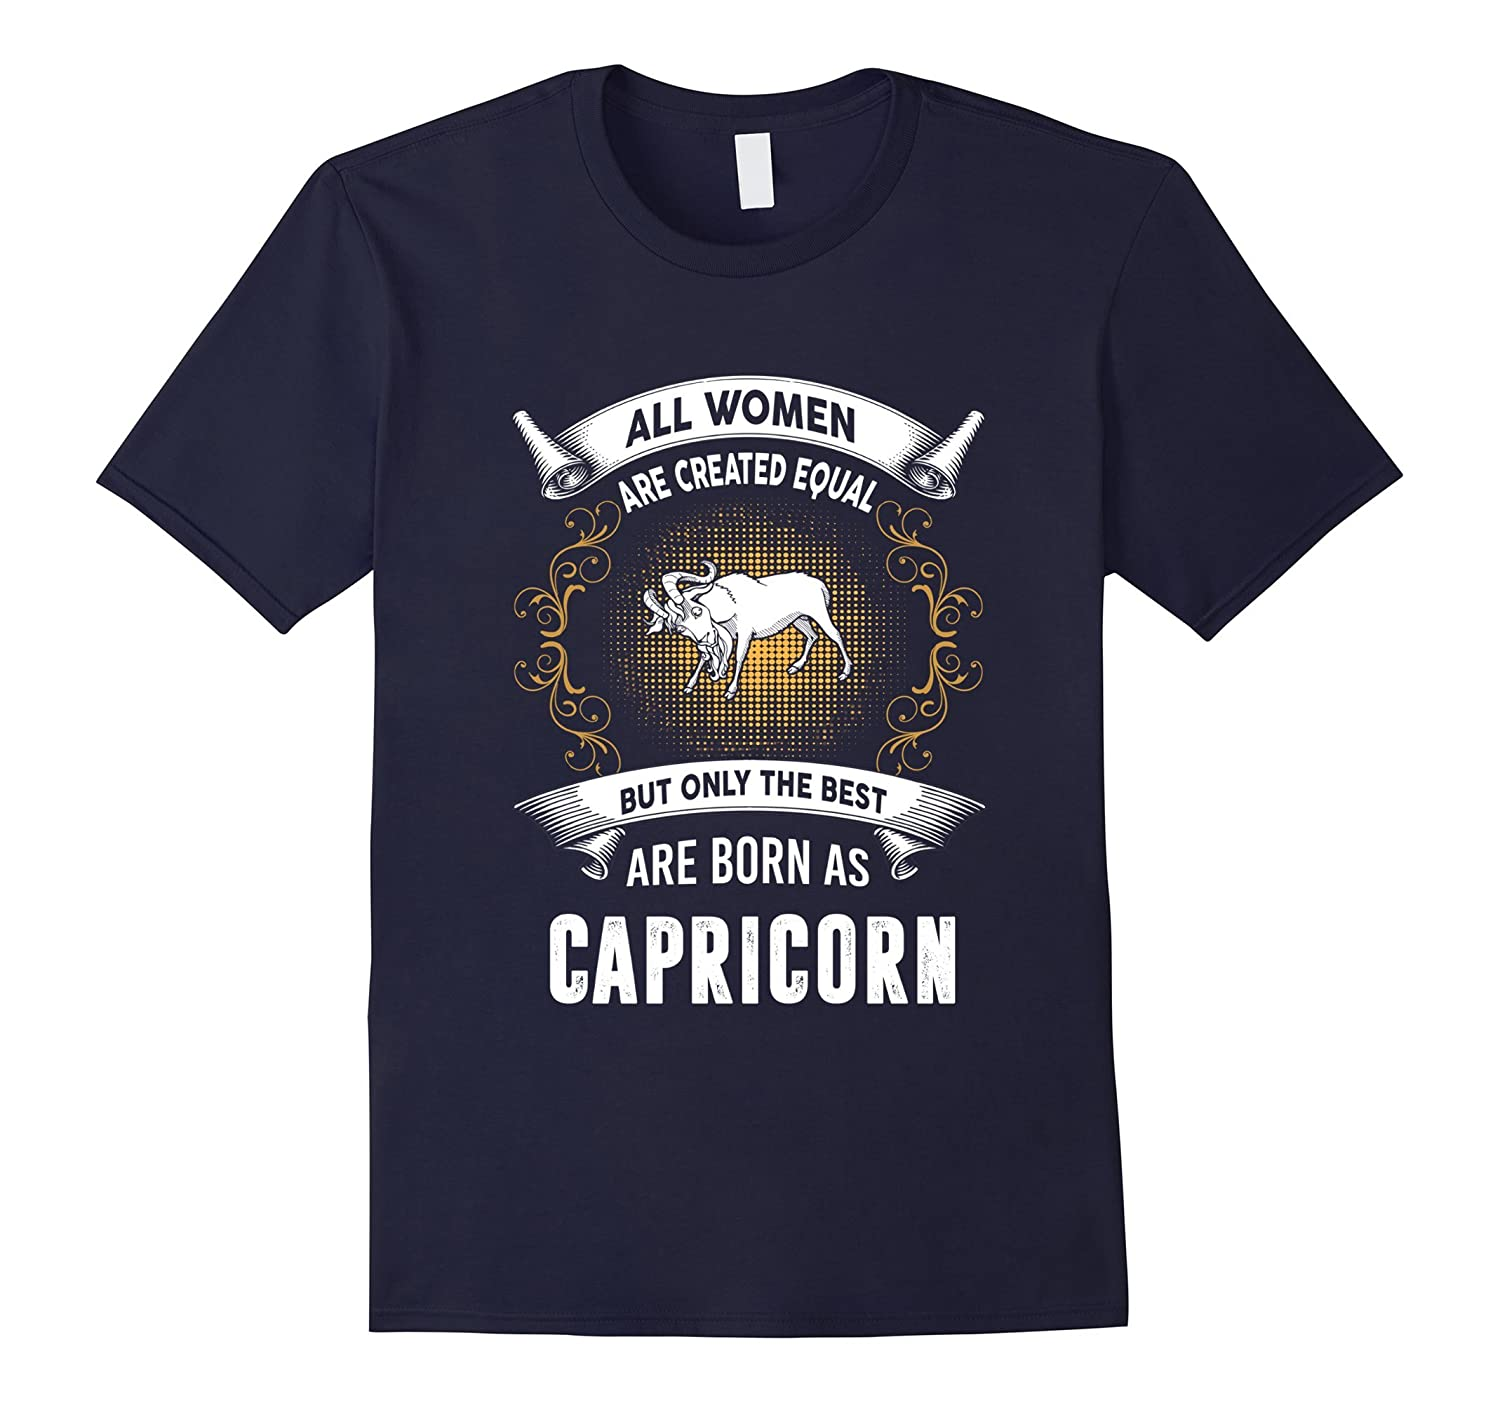 All women are created equal but the best are born CAPRICORN